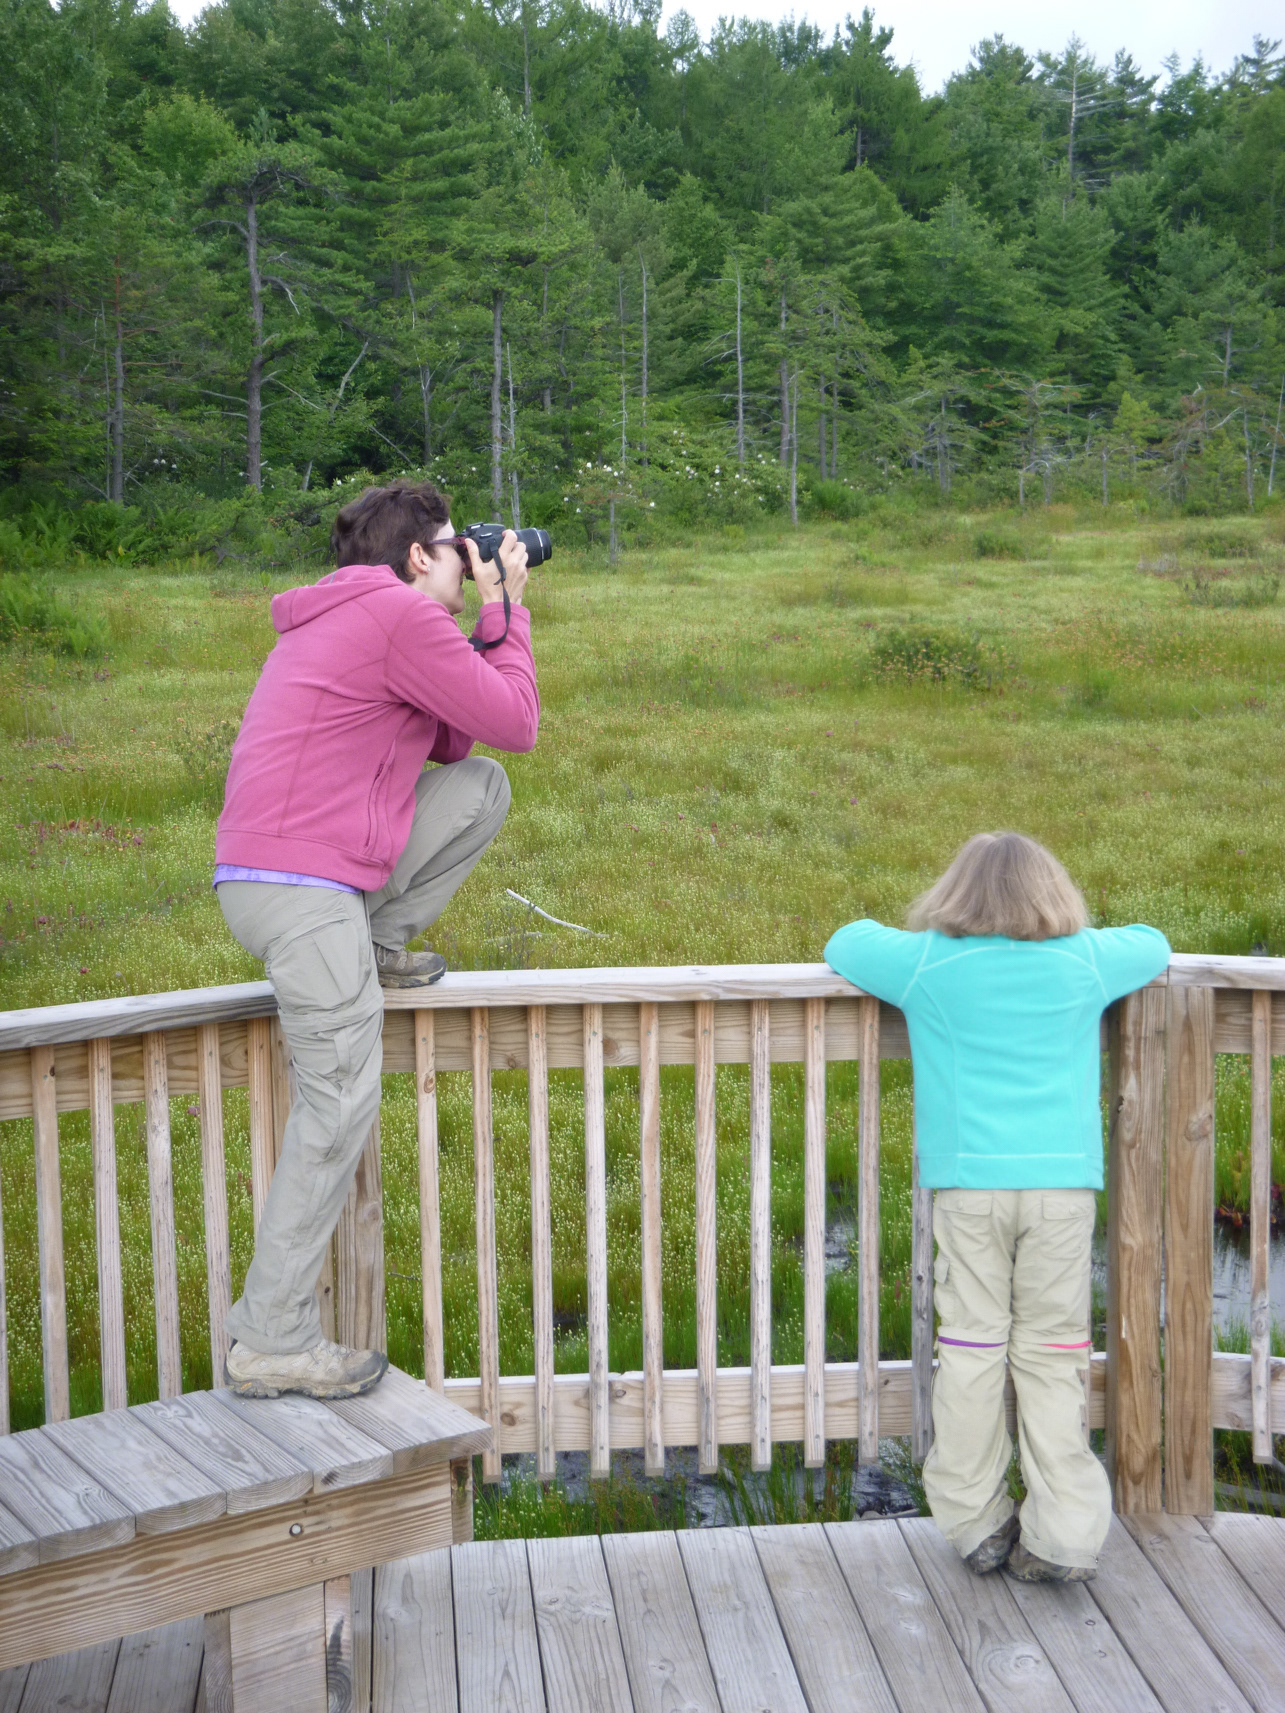 Kelly Paal taking a photo in the laurel highlands.